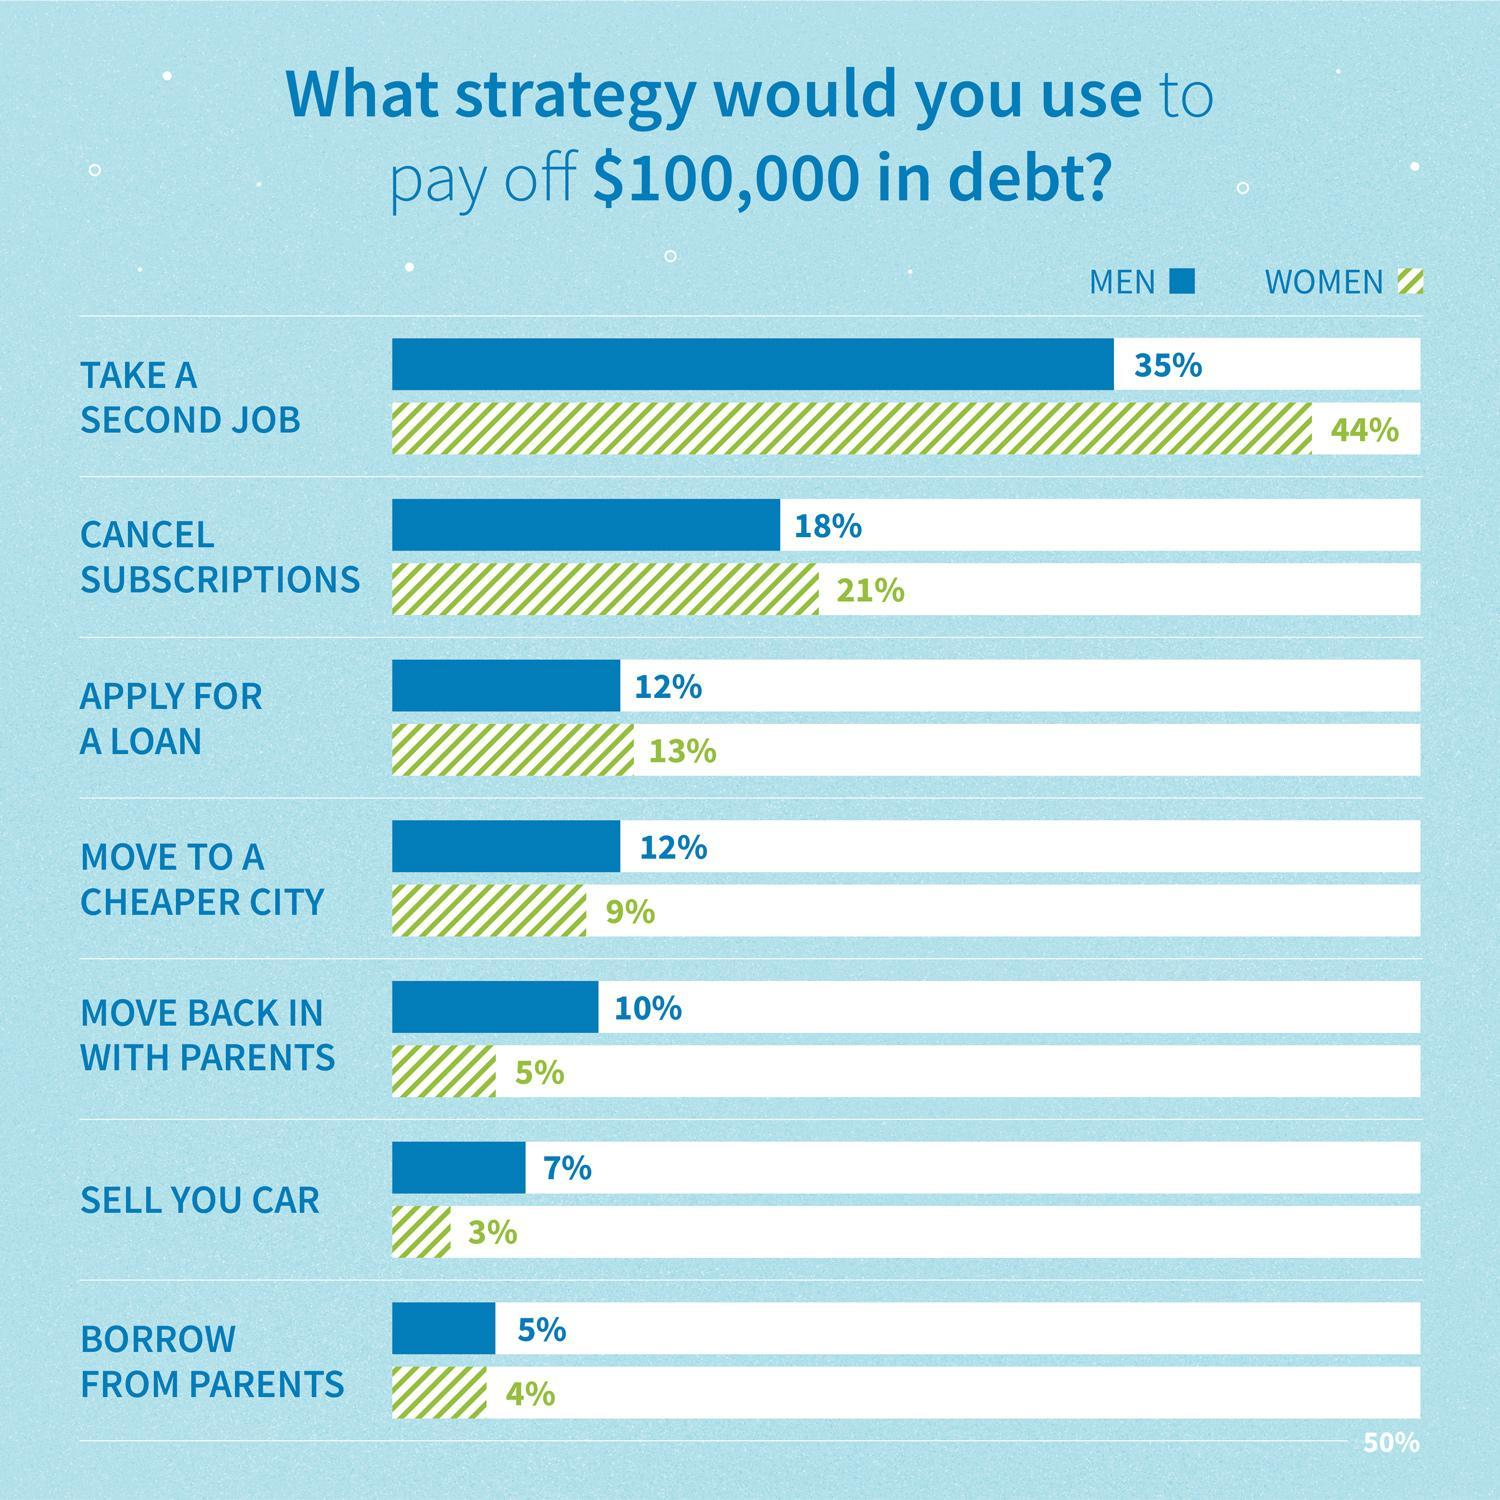 Survey results by age: what strategy would you use to pay off $100,000 in debt?